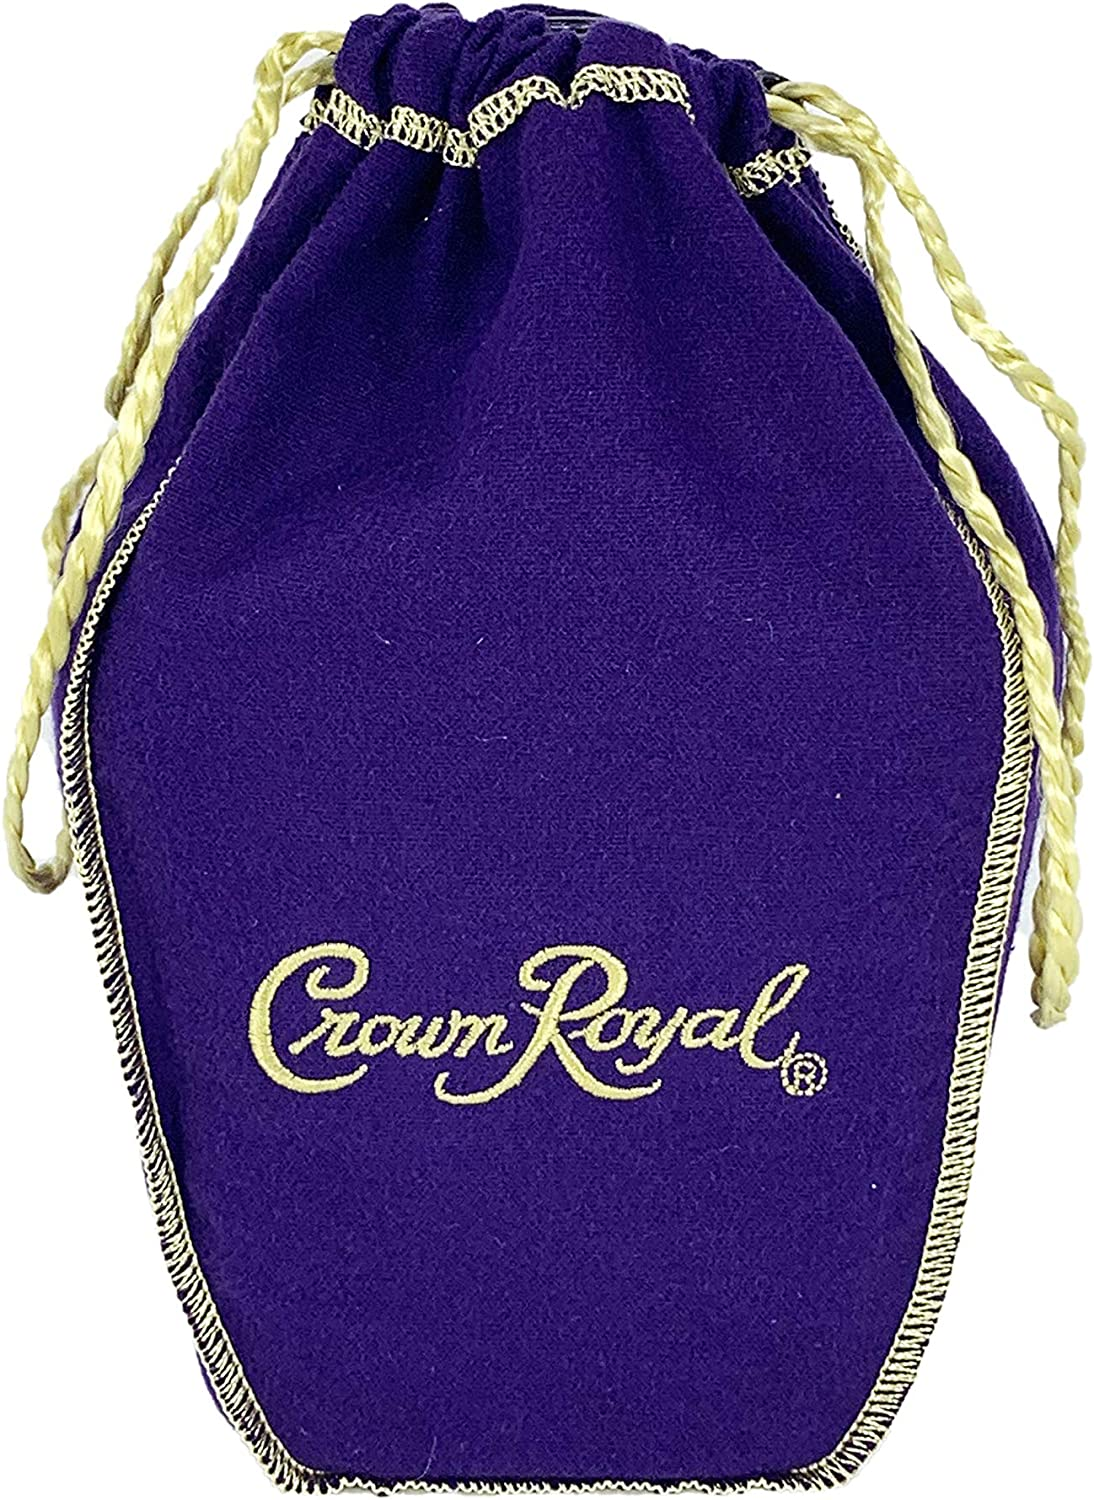 Crown Royal Bag only with Drawstring | Retired and Select Colors and Brands (Purple with Happy Holidays)